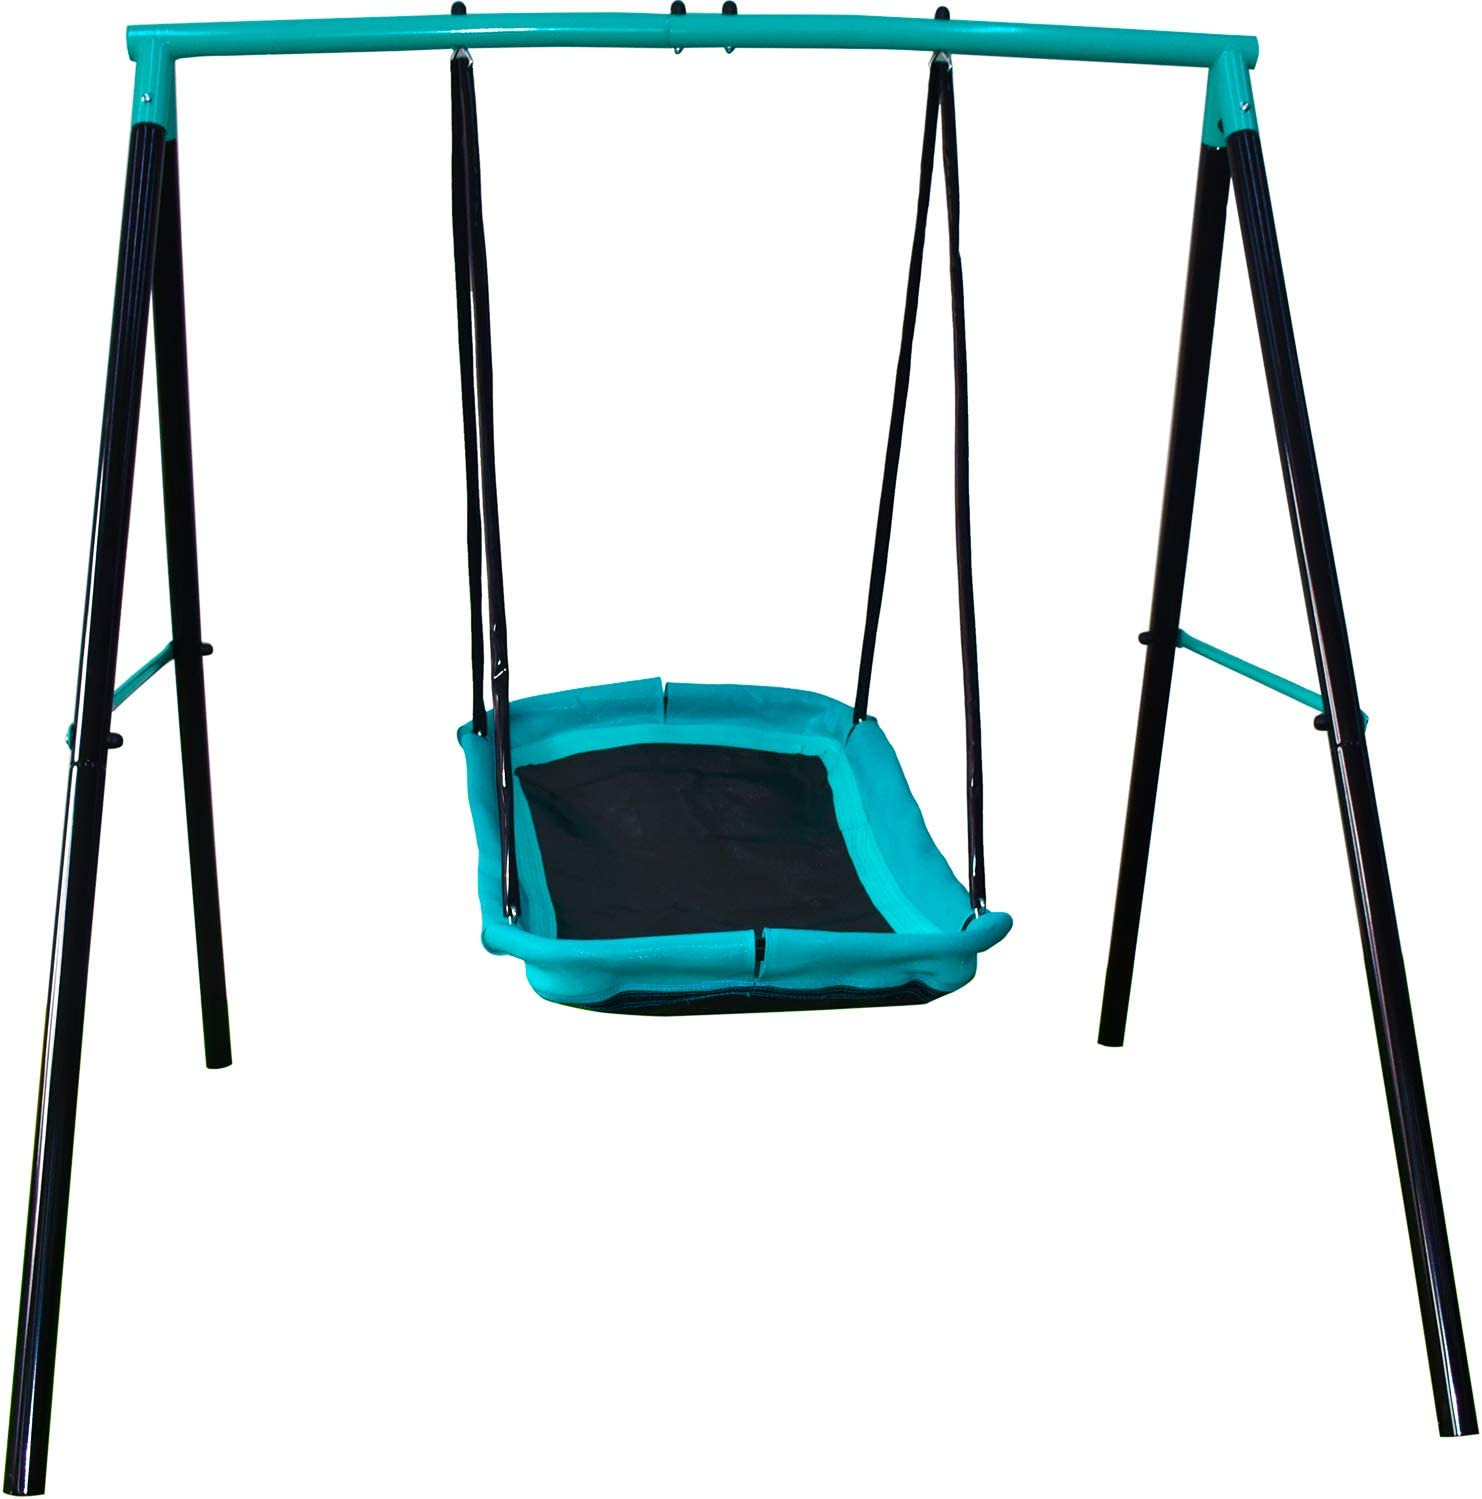 Swing Sets for Backyard, Sturdy Steel Frame for Up to 2 Children Saucer Swing with Frame Toddler Swing with Stand